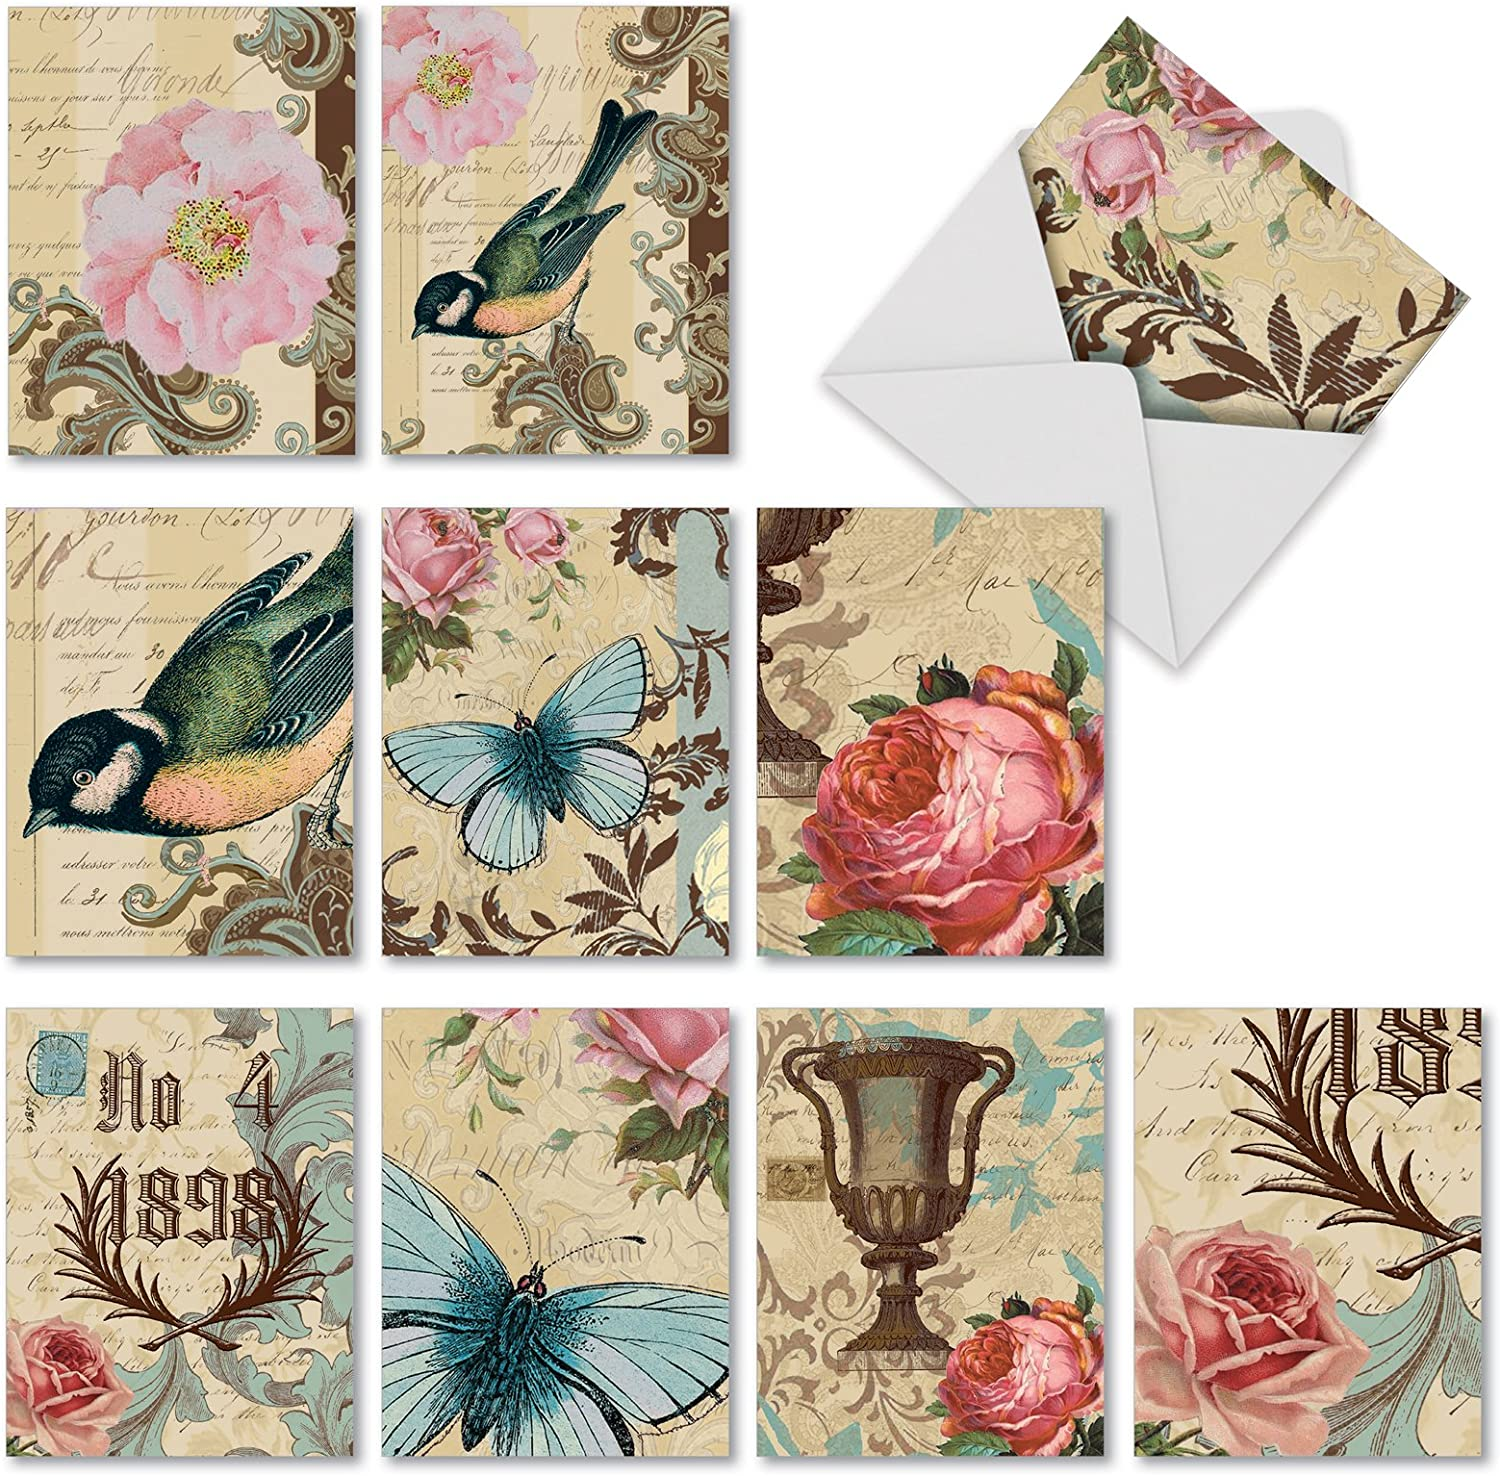 The Best Card Company - 10 Bird Note Cards Blank (4 x 5.12 Inch) - All Occasion Cards with Envelopes, Boxed Set - Victorian Garden